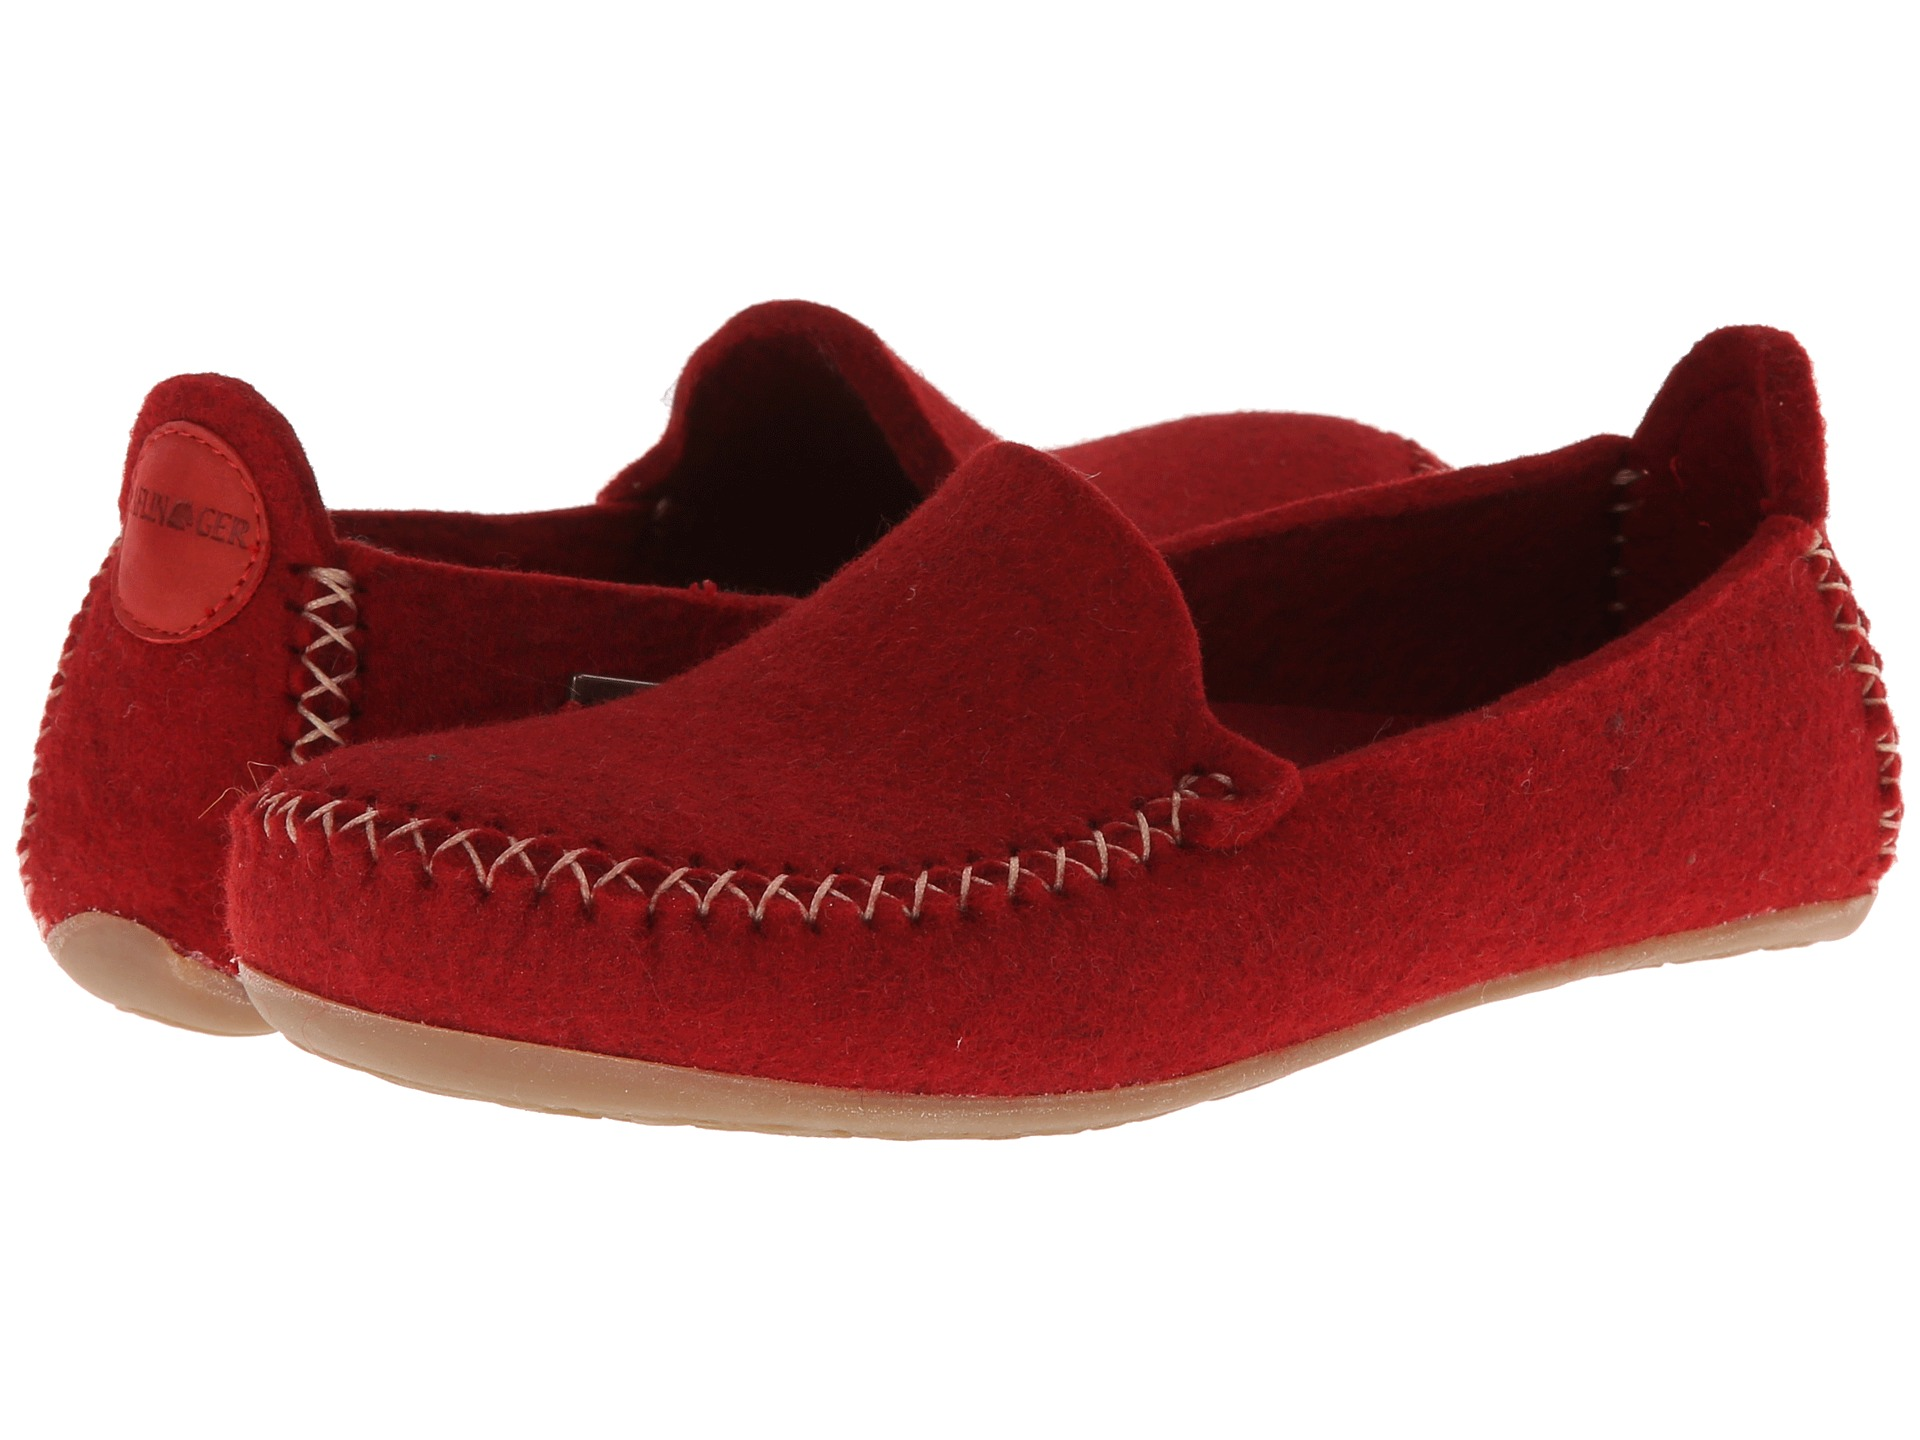 Haflinger Moccasin Chili - Zappos.com Free Shipping BOTH Ways